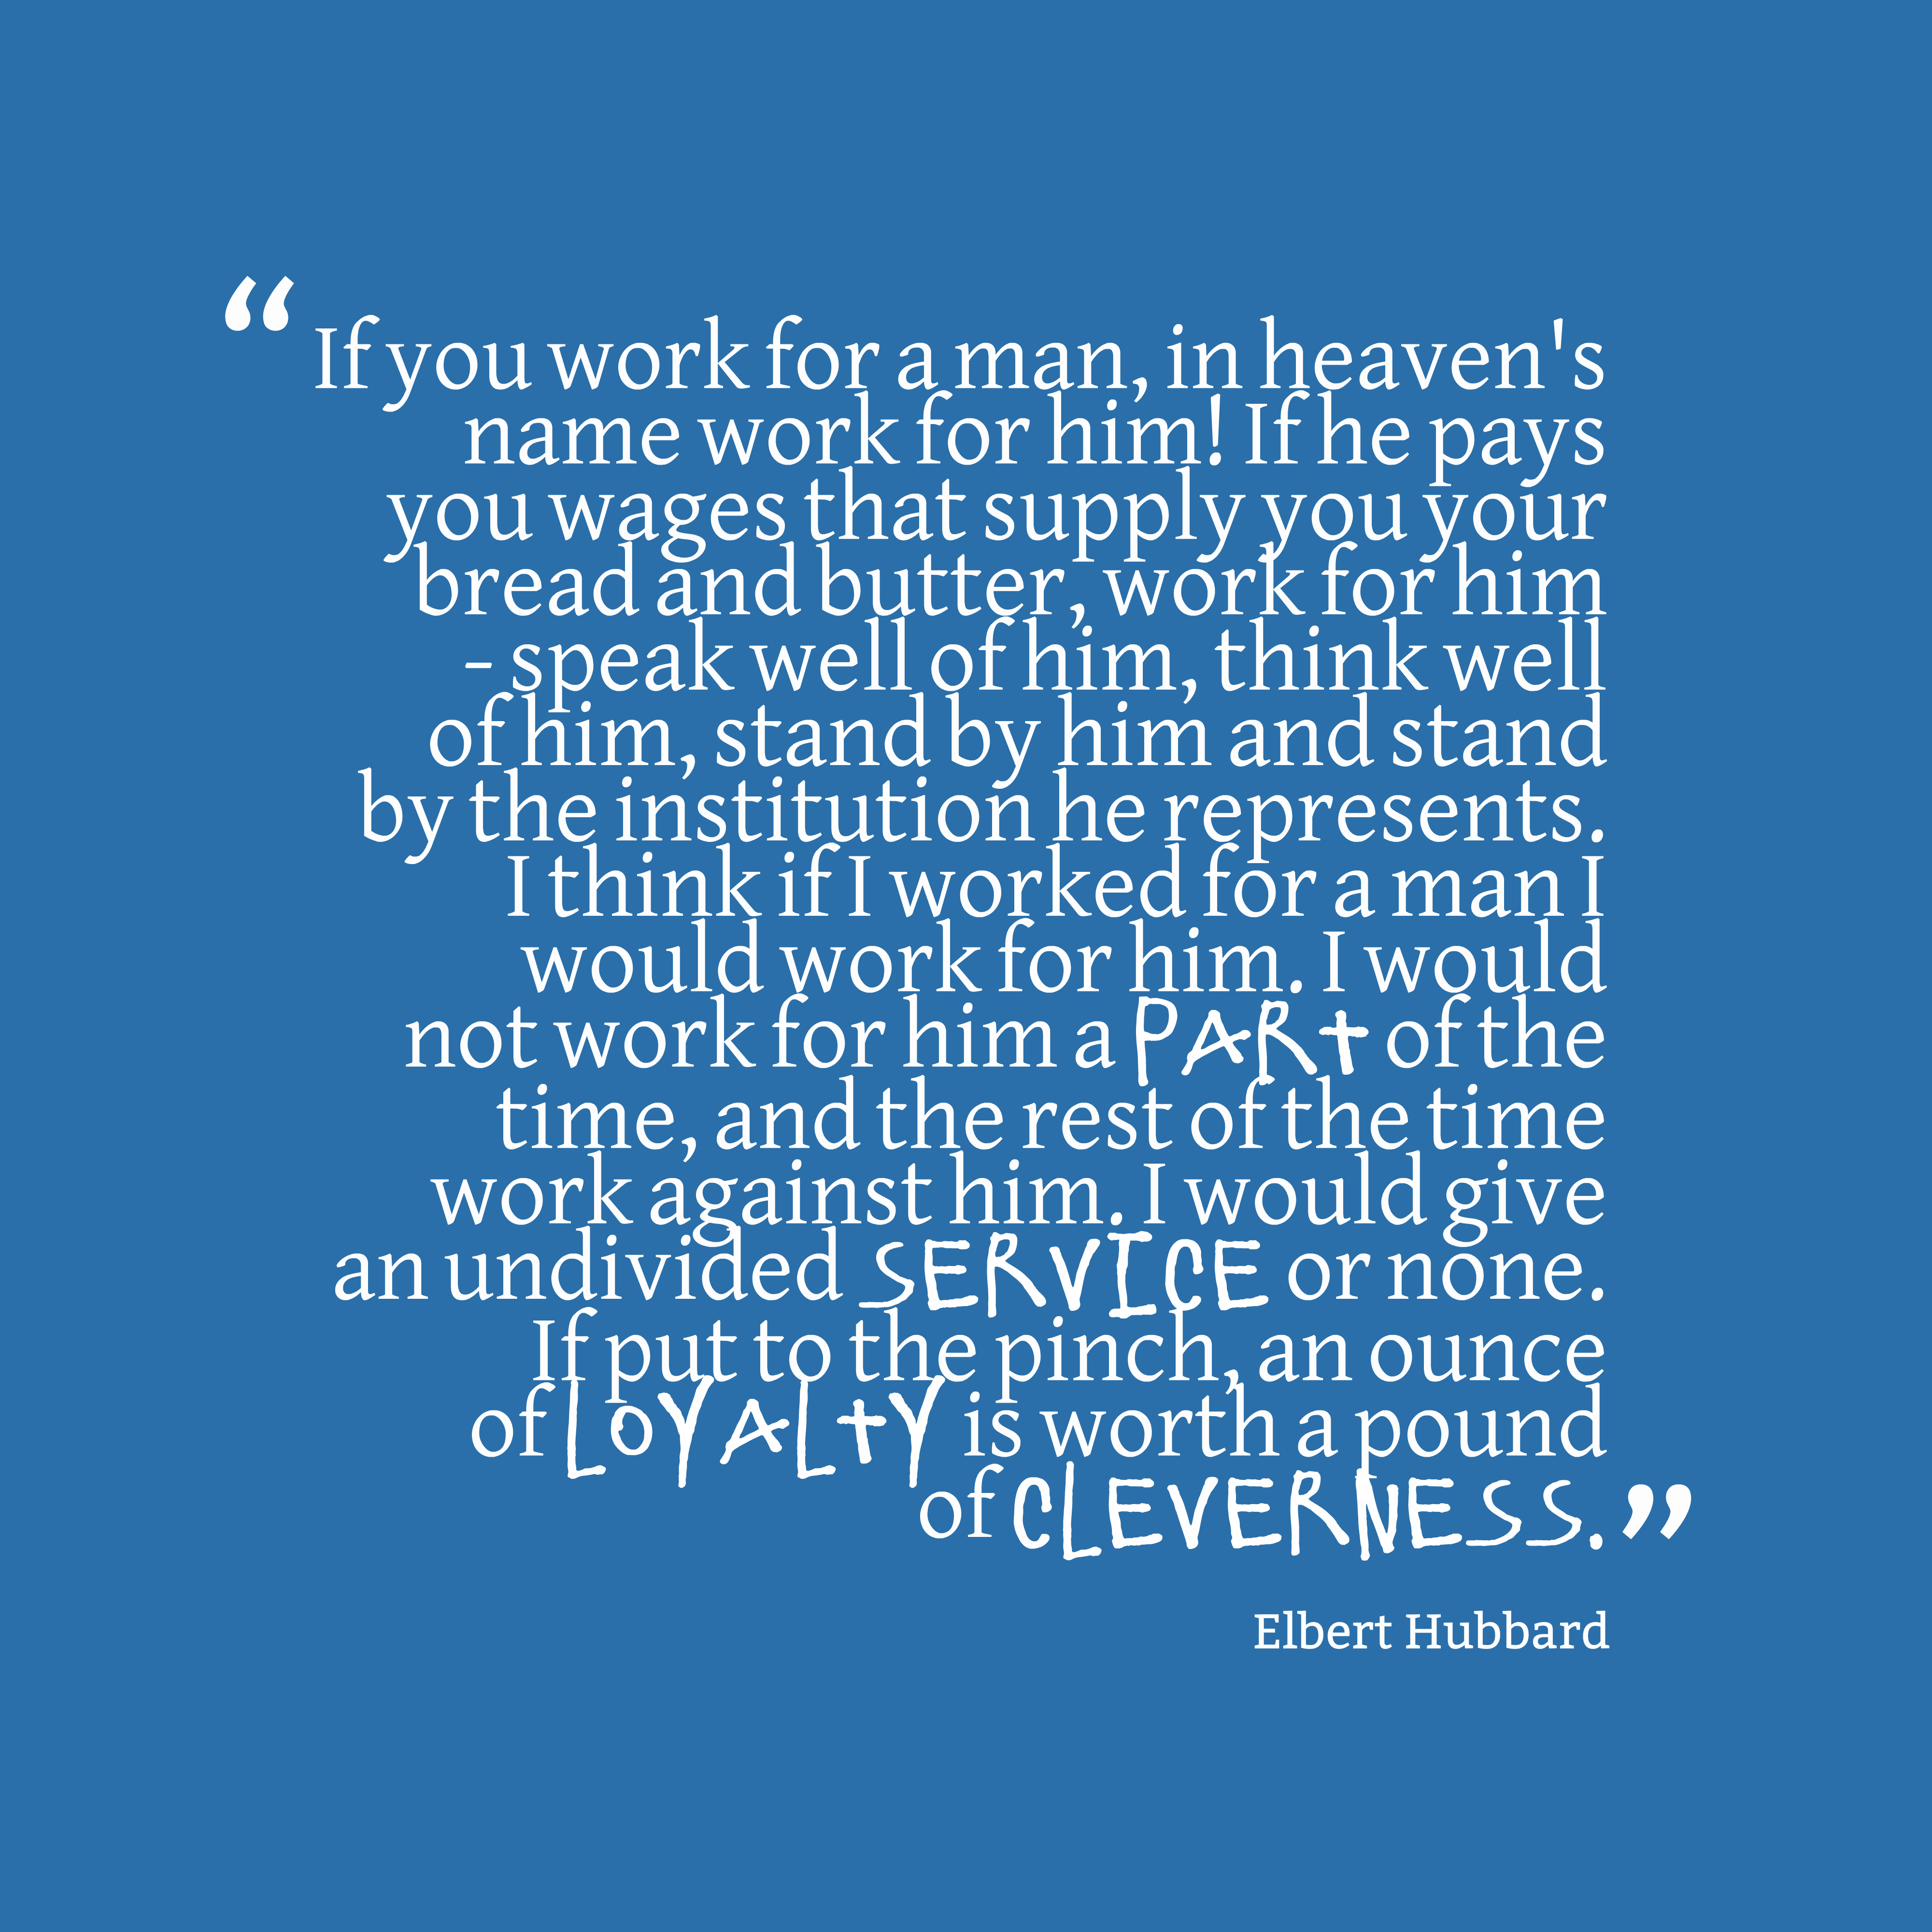 Quotes image of If you work for a man, in heaven's name work for him! If he pays you wages that supply you your bread and butter, work for him - speak well of him, think well of him, stand by him and stand by the institution he represents. I think if I worked for a man I would work for him. I would not work for him a part of the time, and the rest of the time work against him. I would give an undivided service or none. If put to the pinch, an ounce of loyalty is worth a pound of cleverness.